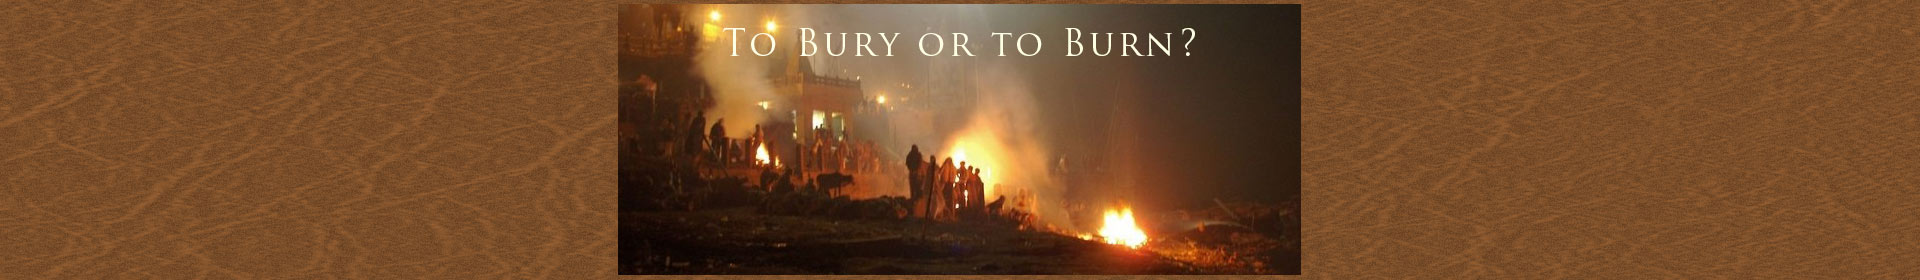 To Bury or to Burn?